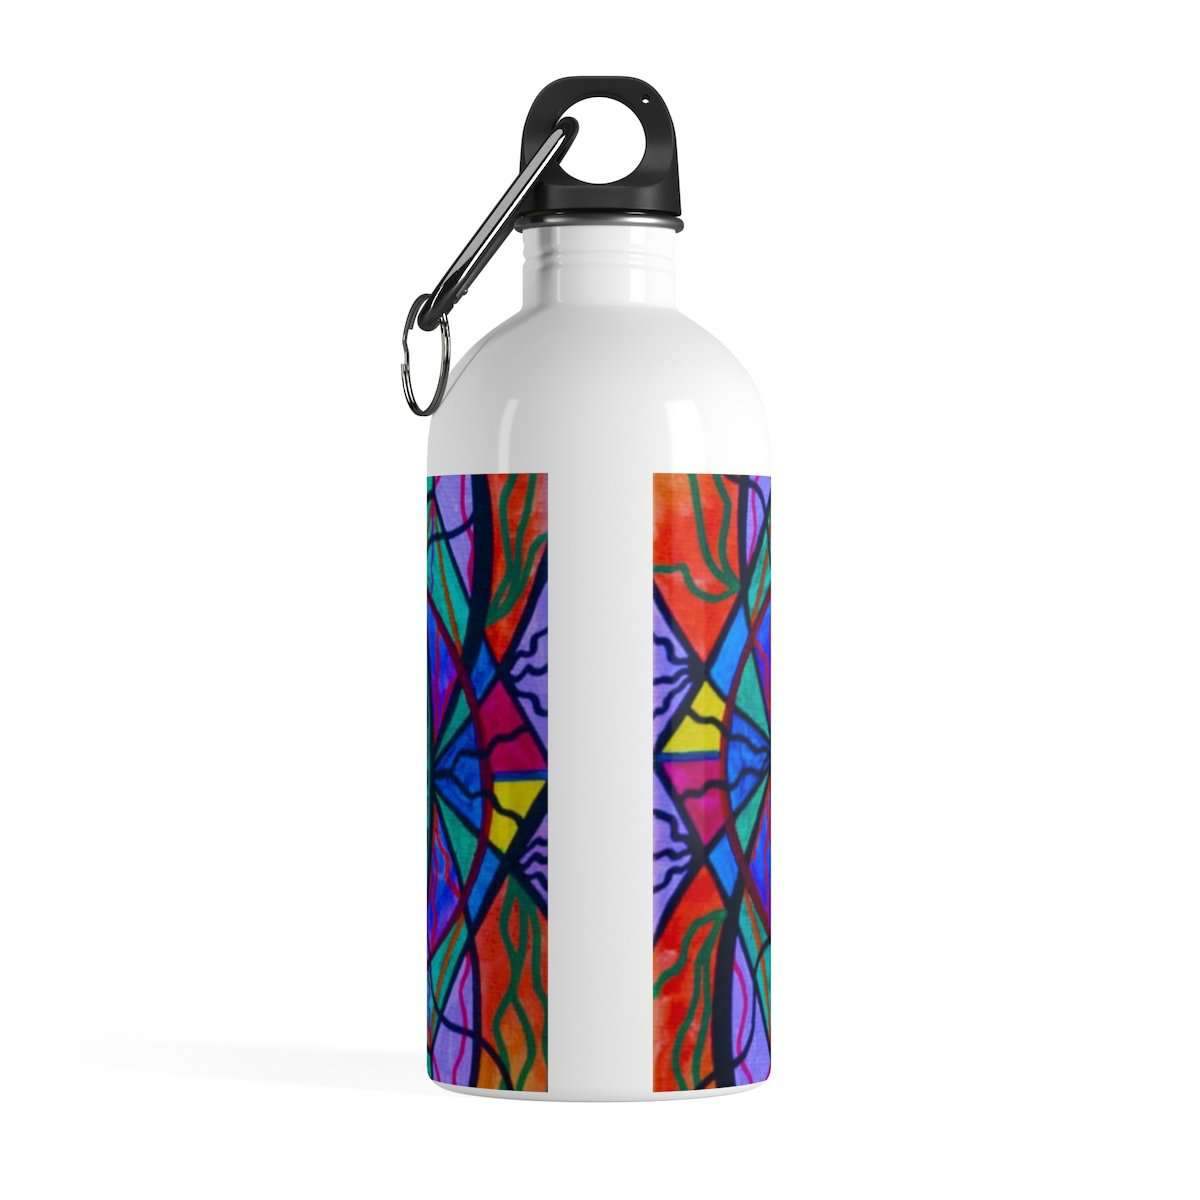 Poised Assurance - Stainless Steel Water Bottle